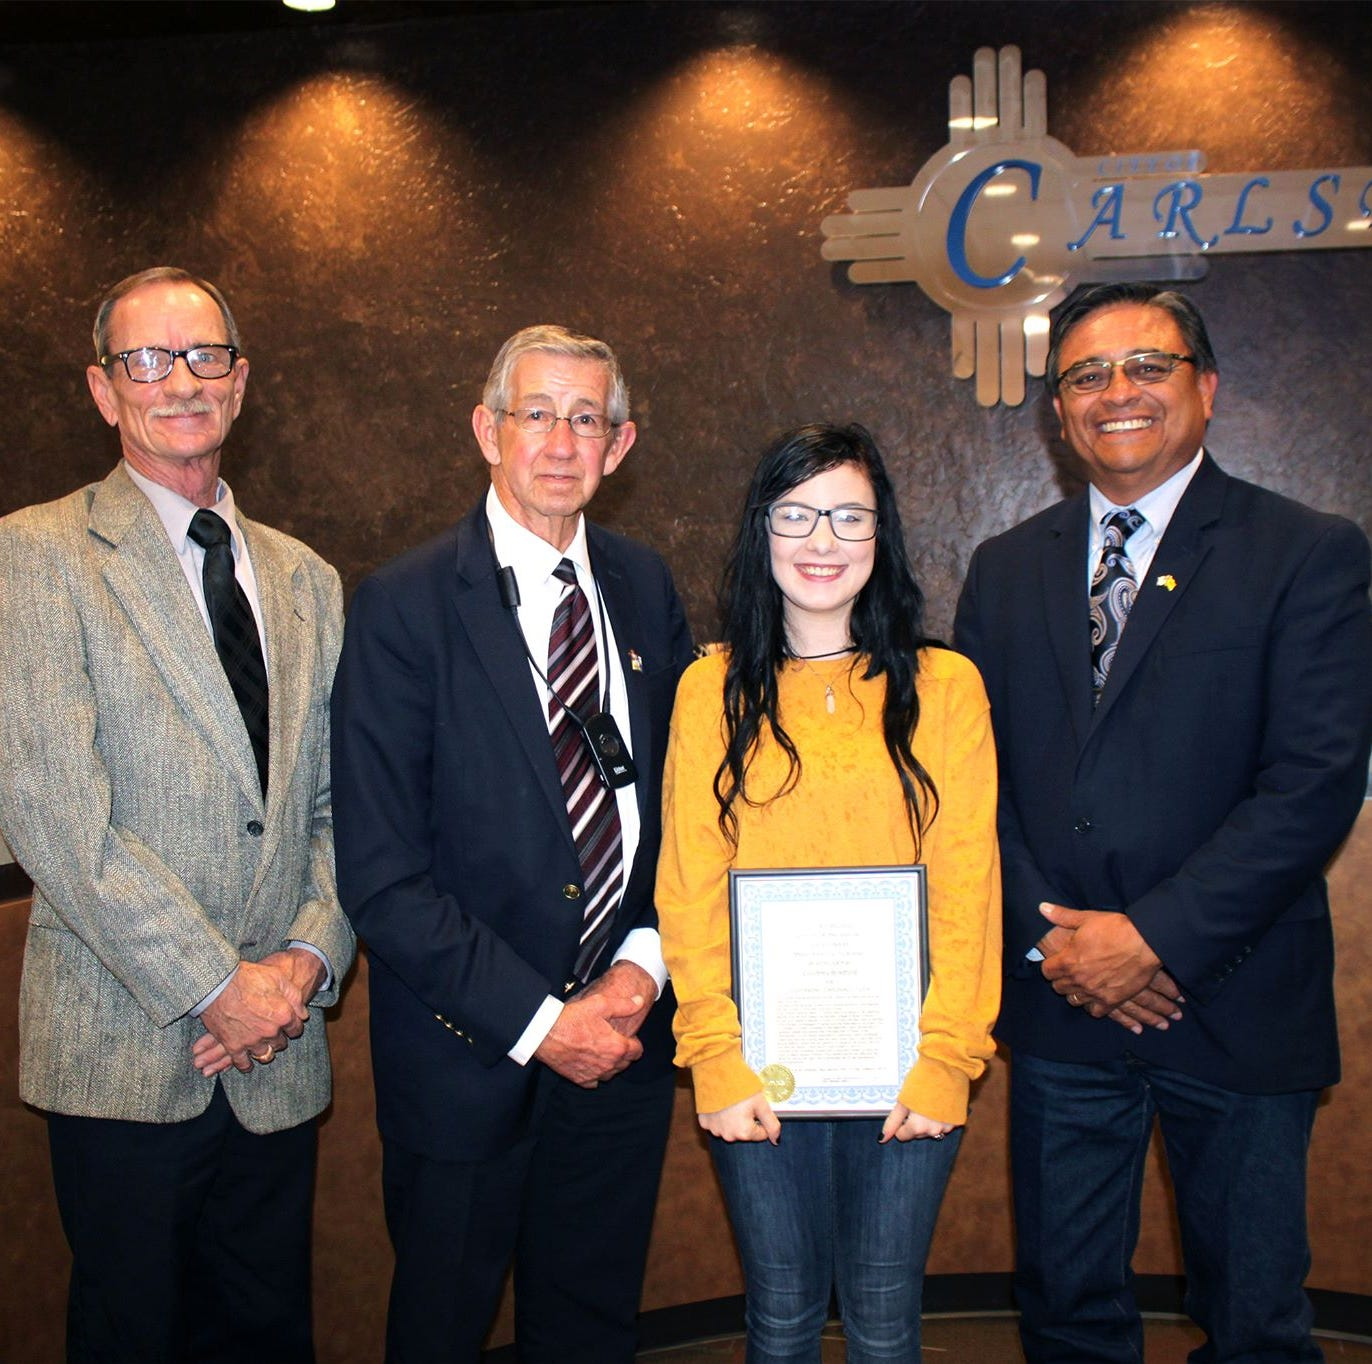 Business briefs: Bradford honored